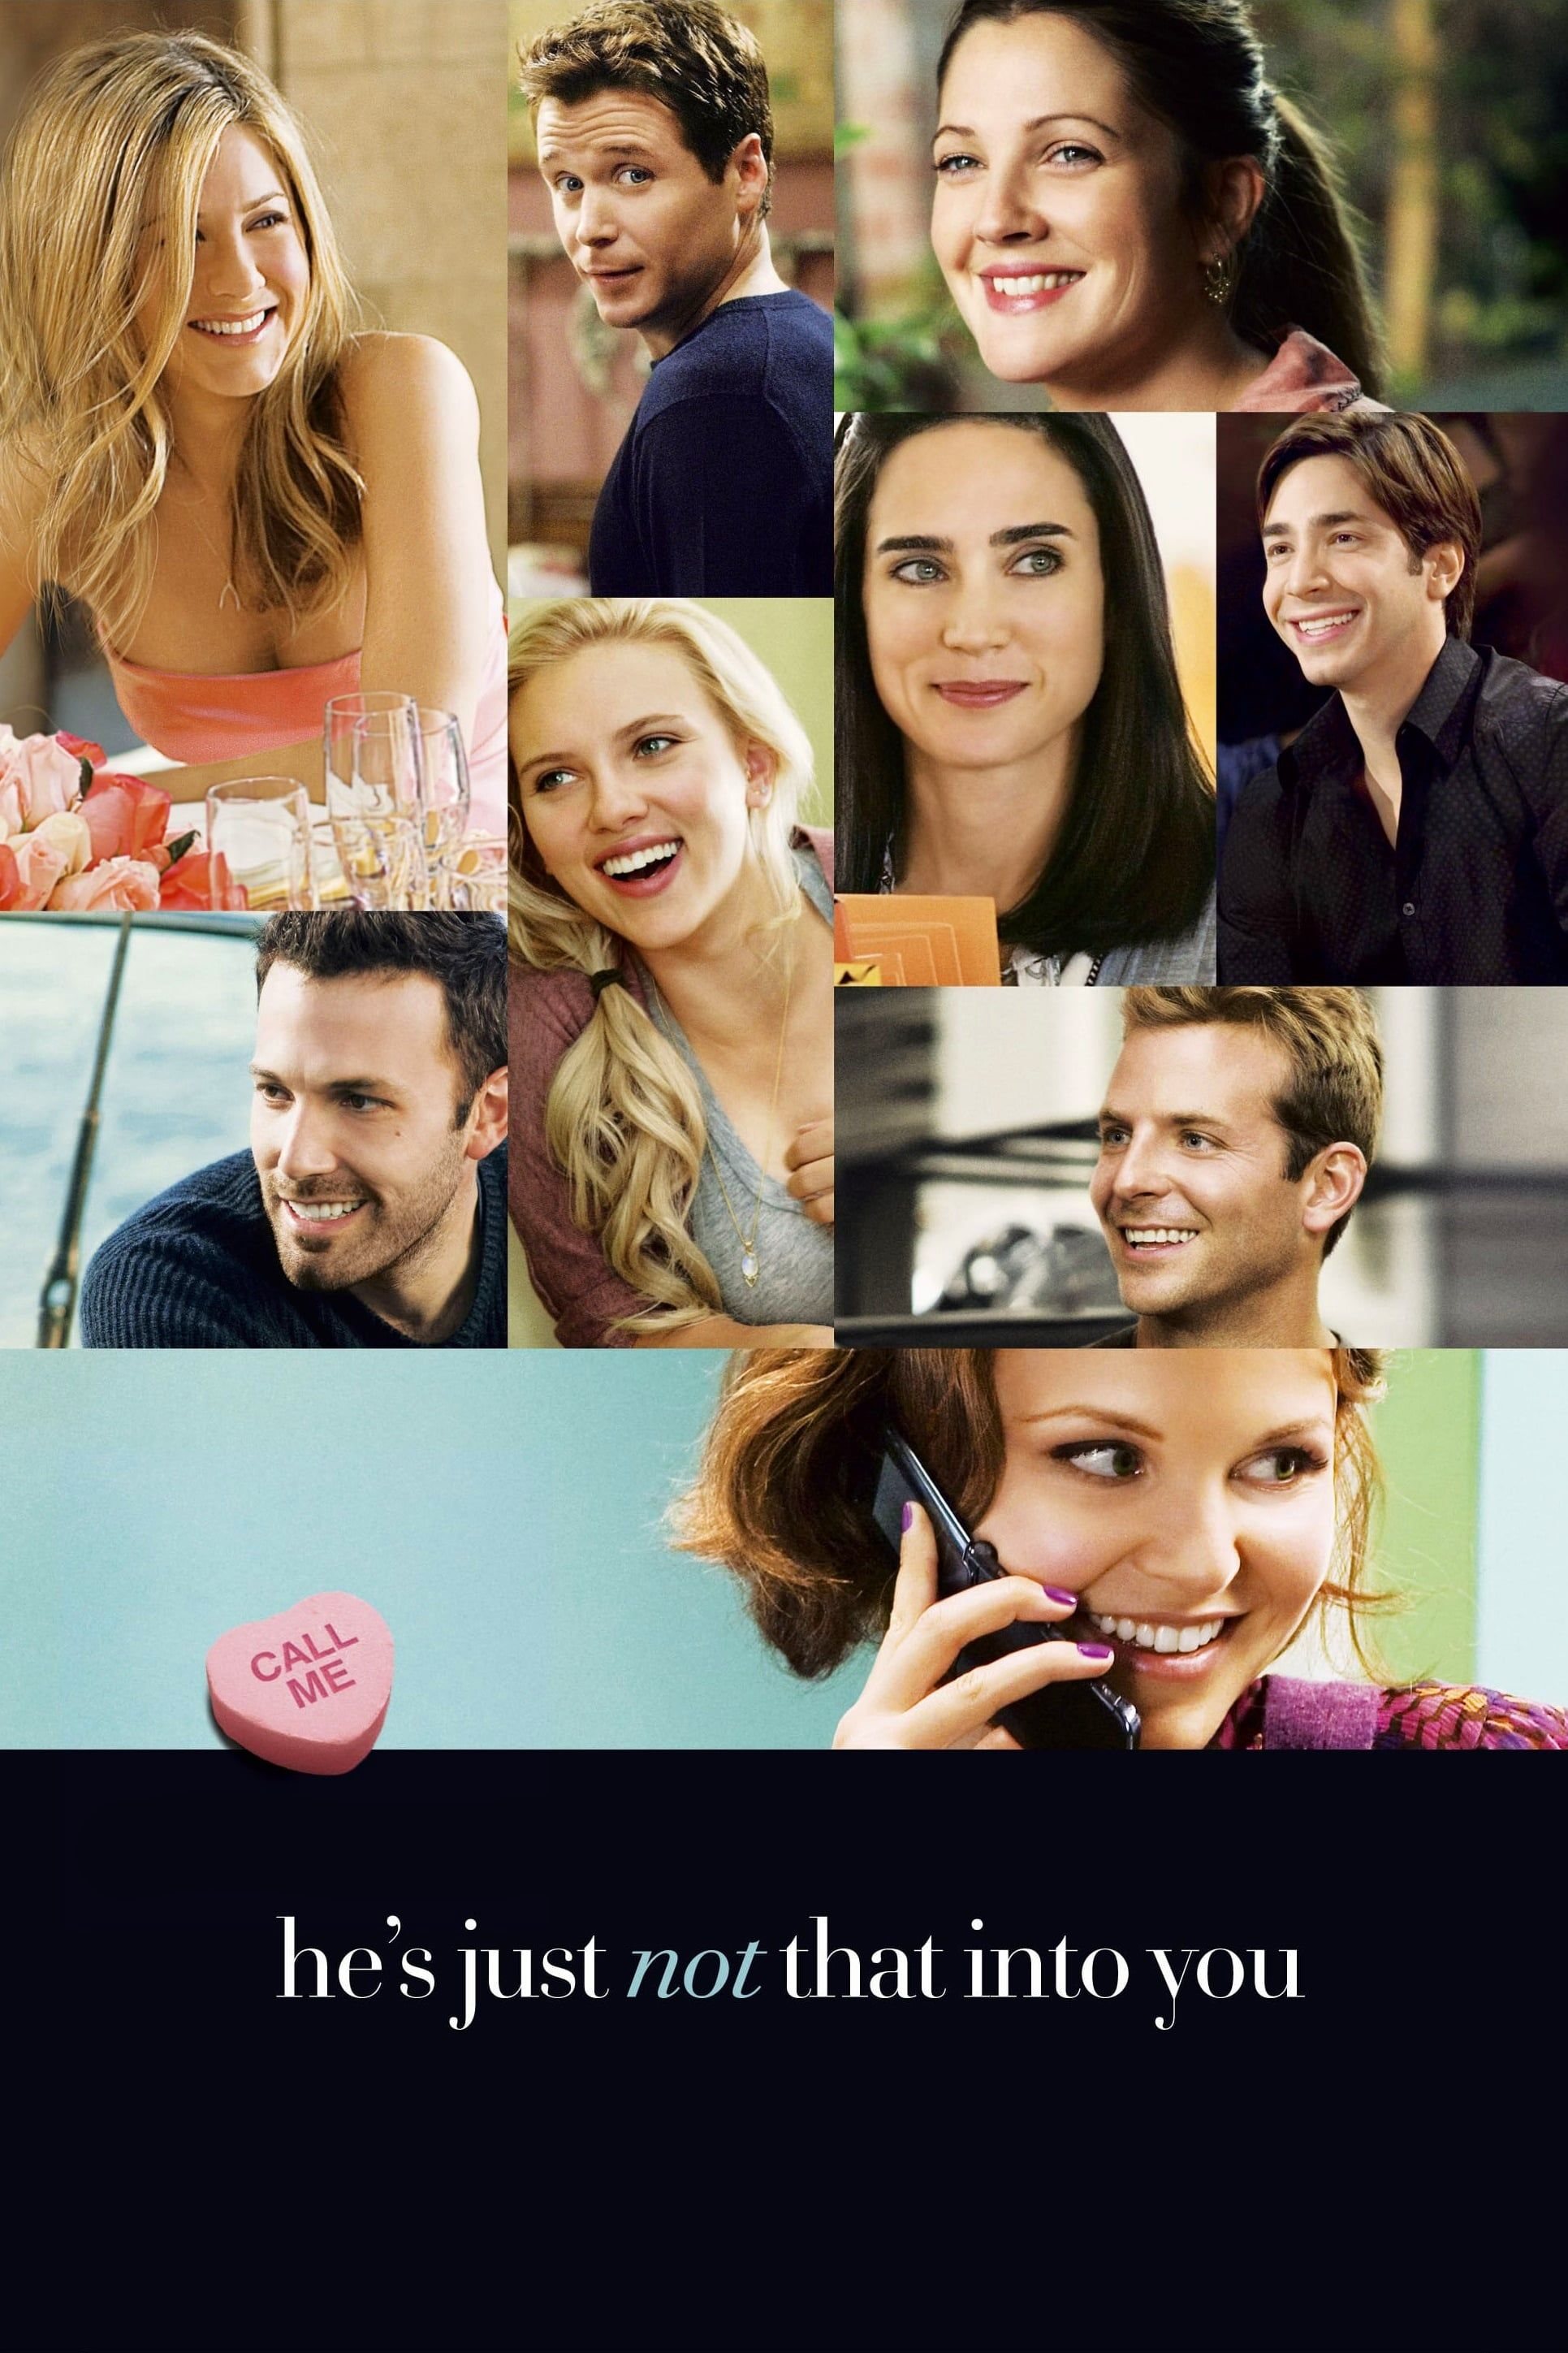 Watch He's Just Not That Into You full movie online 123movies - #123movies,  #